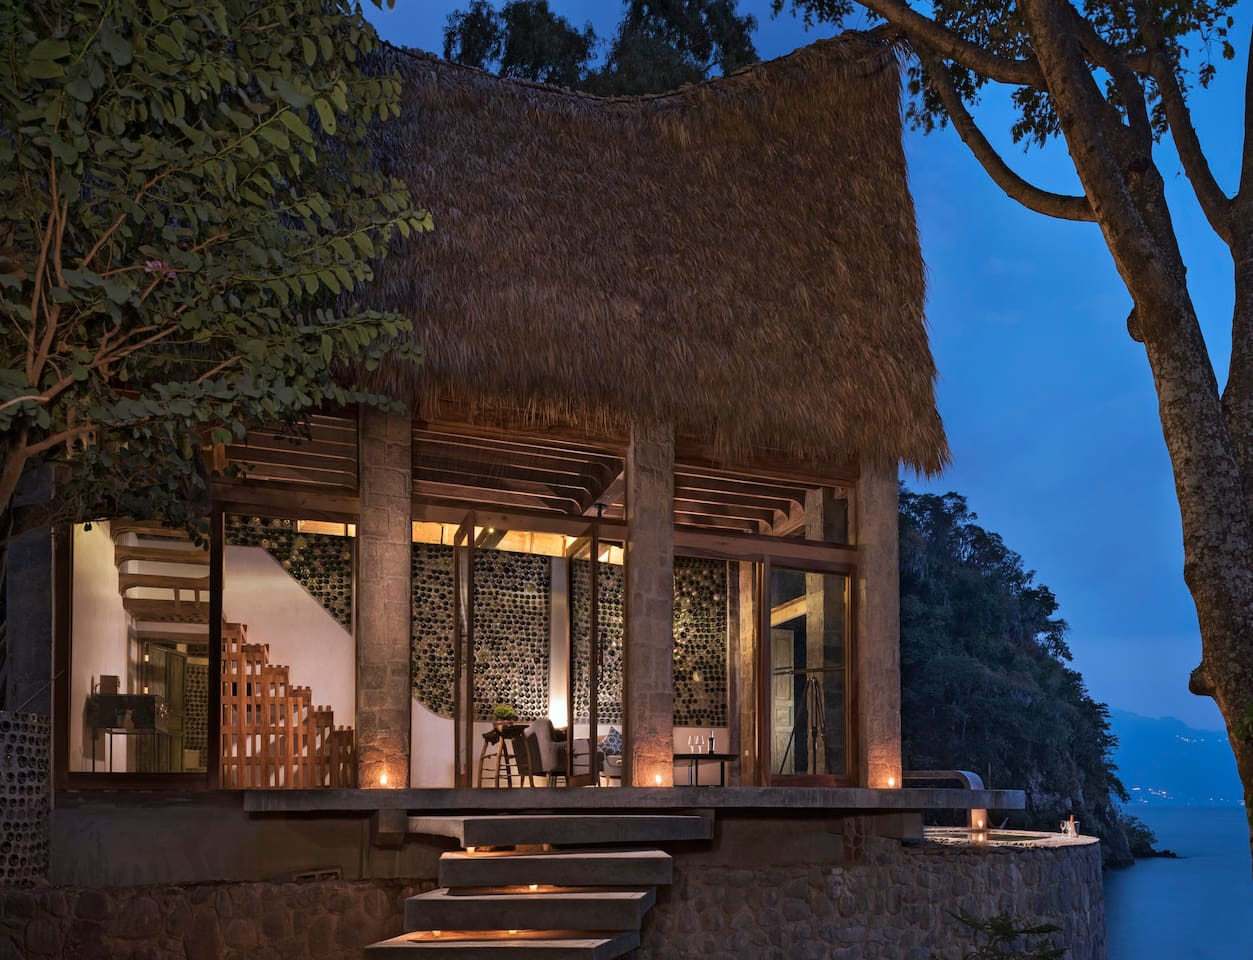 Exterior of suite at dusk.